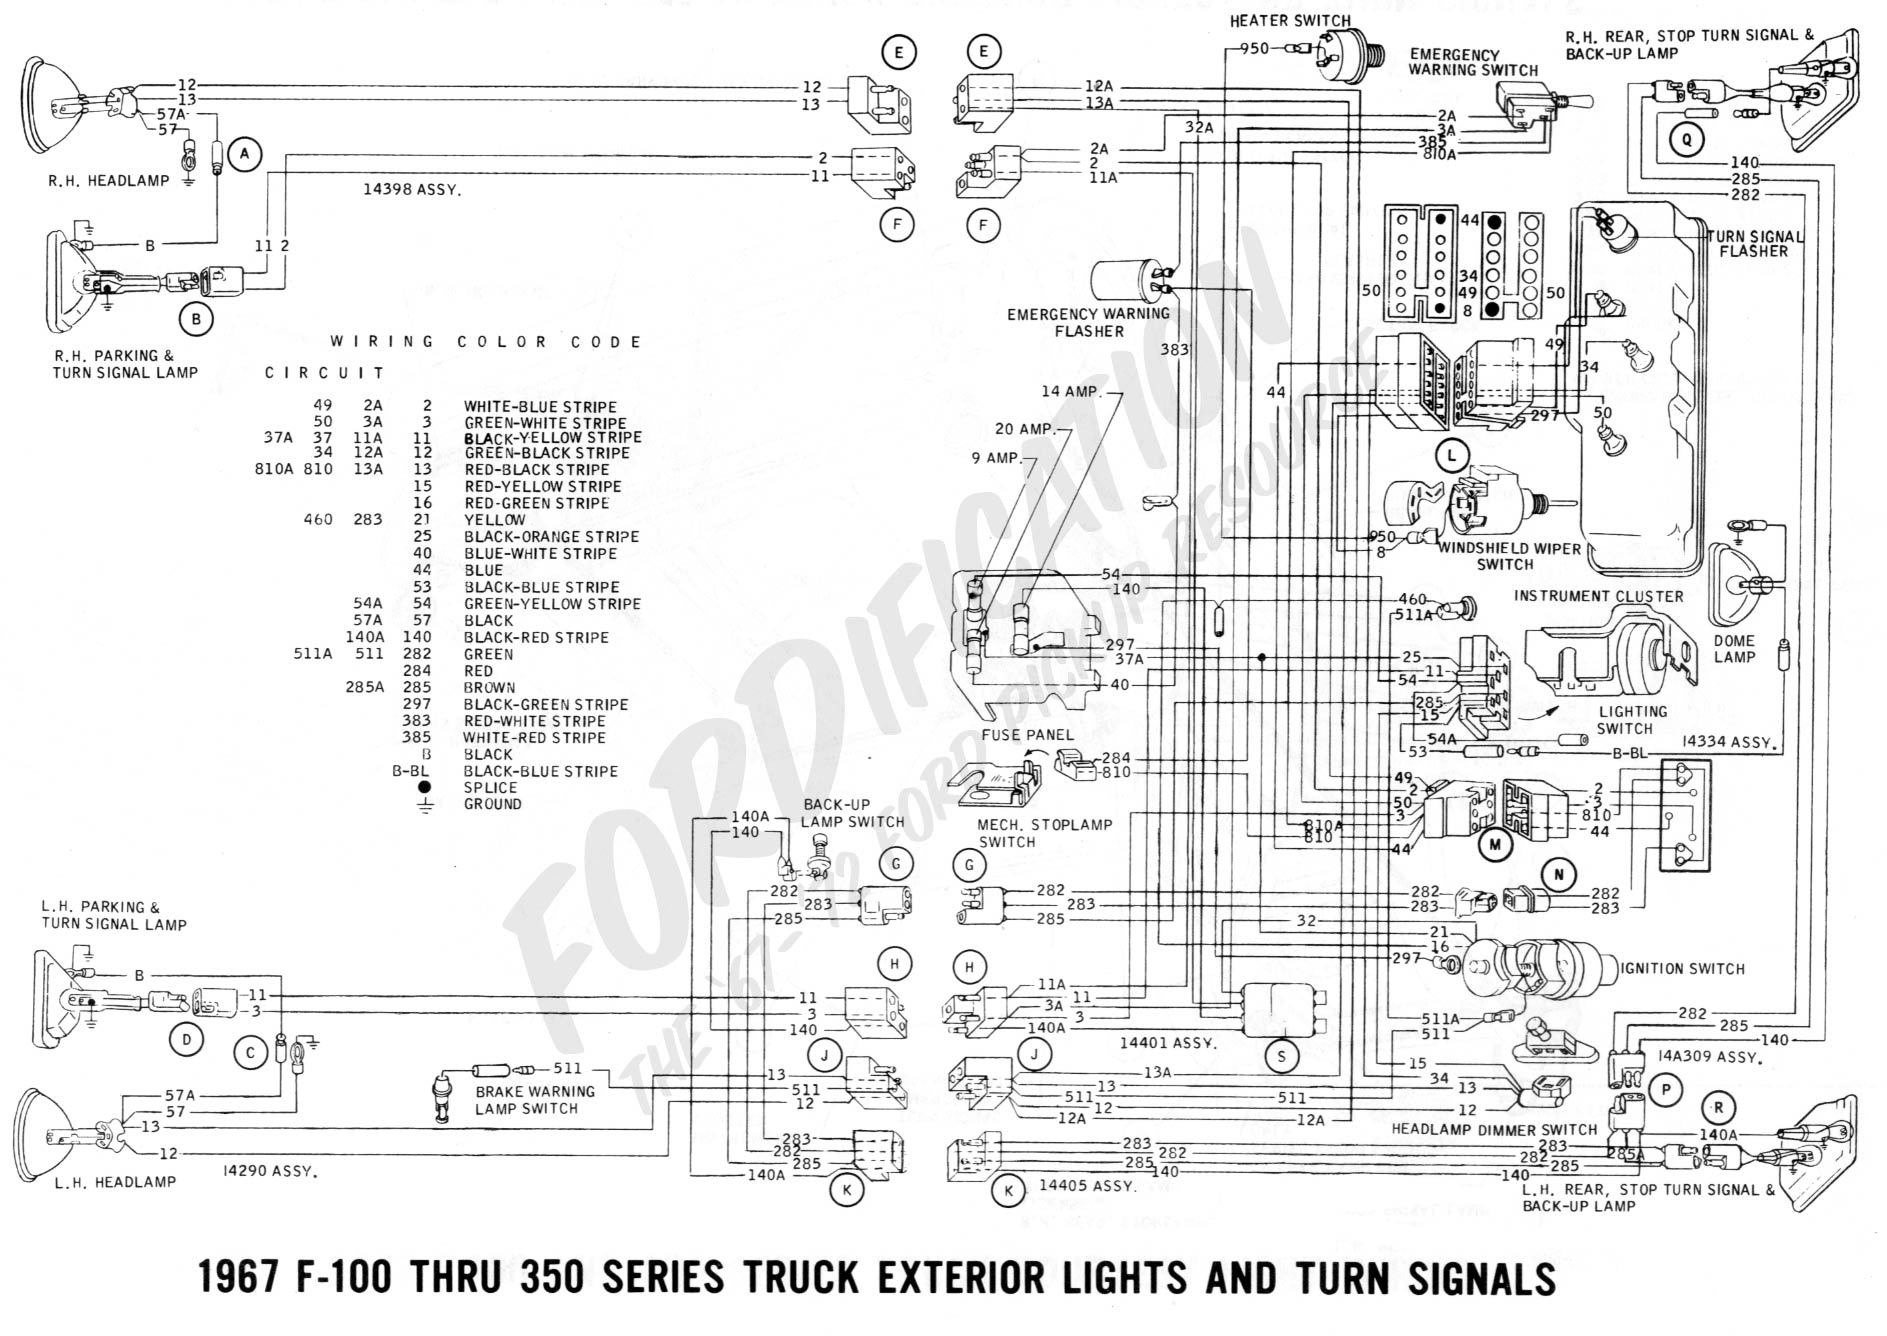 Ford 1967 Truck Wiring Diagram | Wiring Diagram - 2016 F150 Usb Wiring Diagram